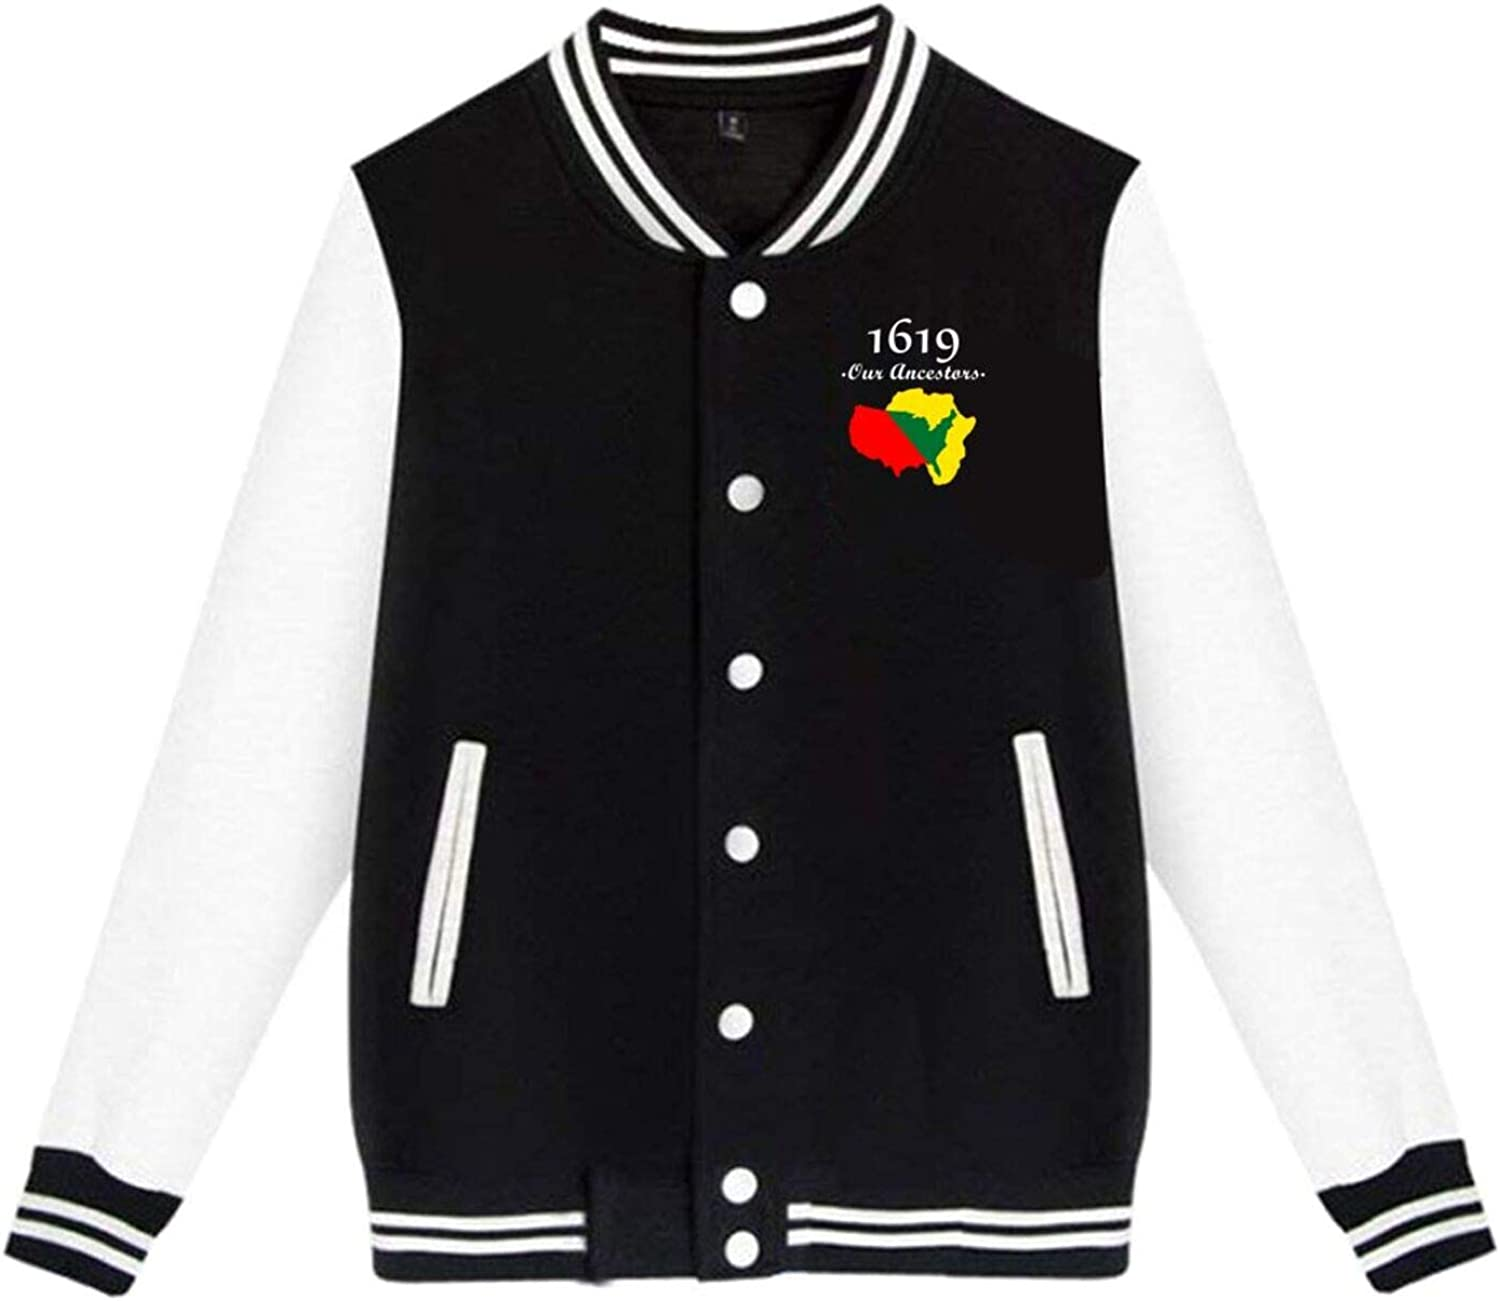 1619 Our Ancestors All items in the store Project Womens Men's 2021new shipping free Baseball Jacket Uniform